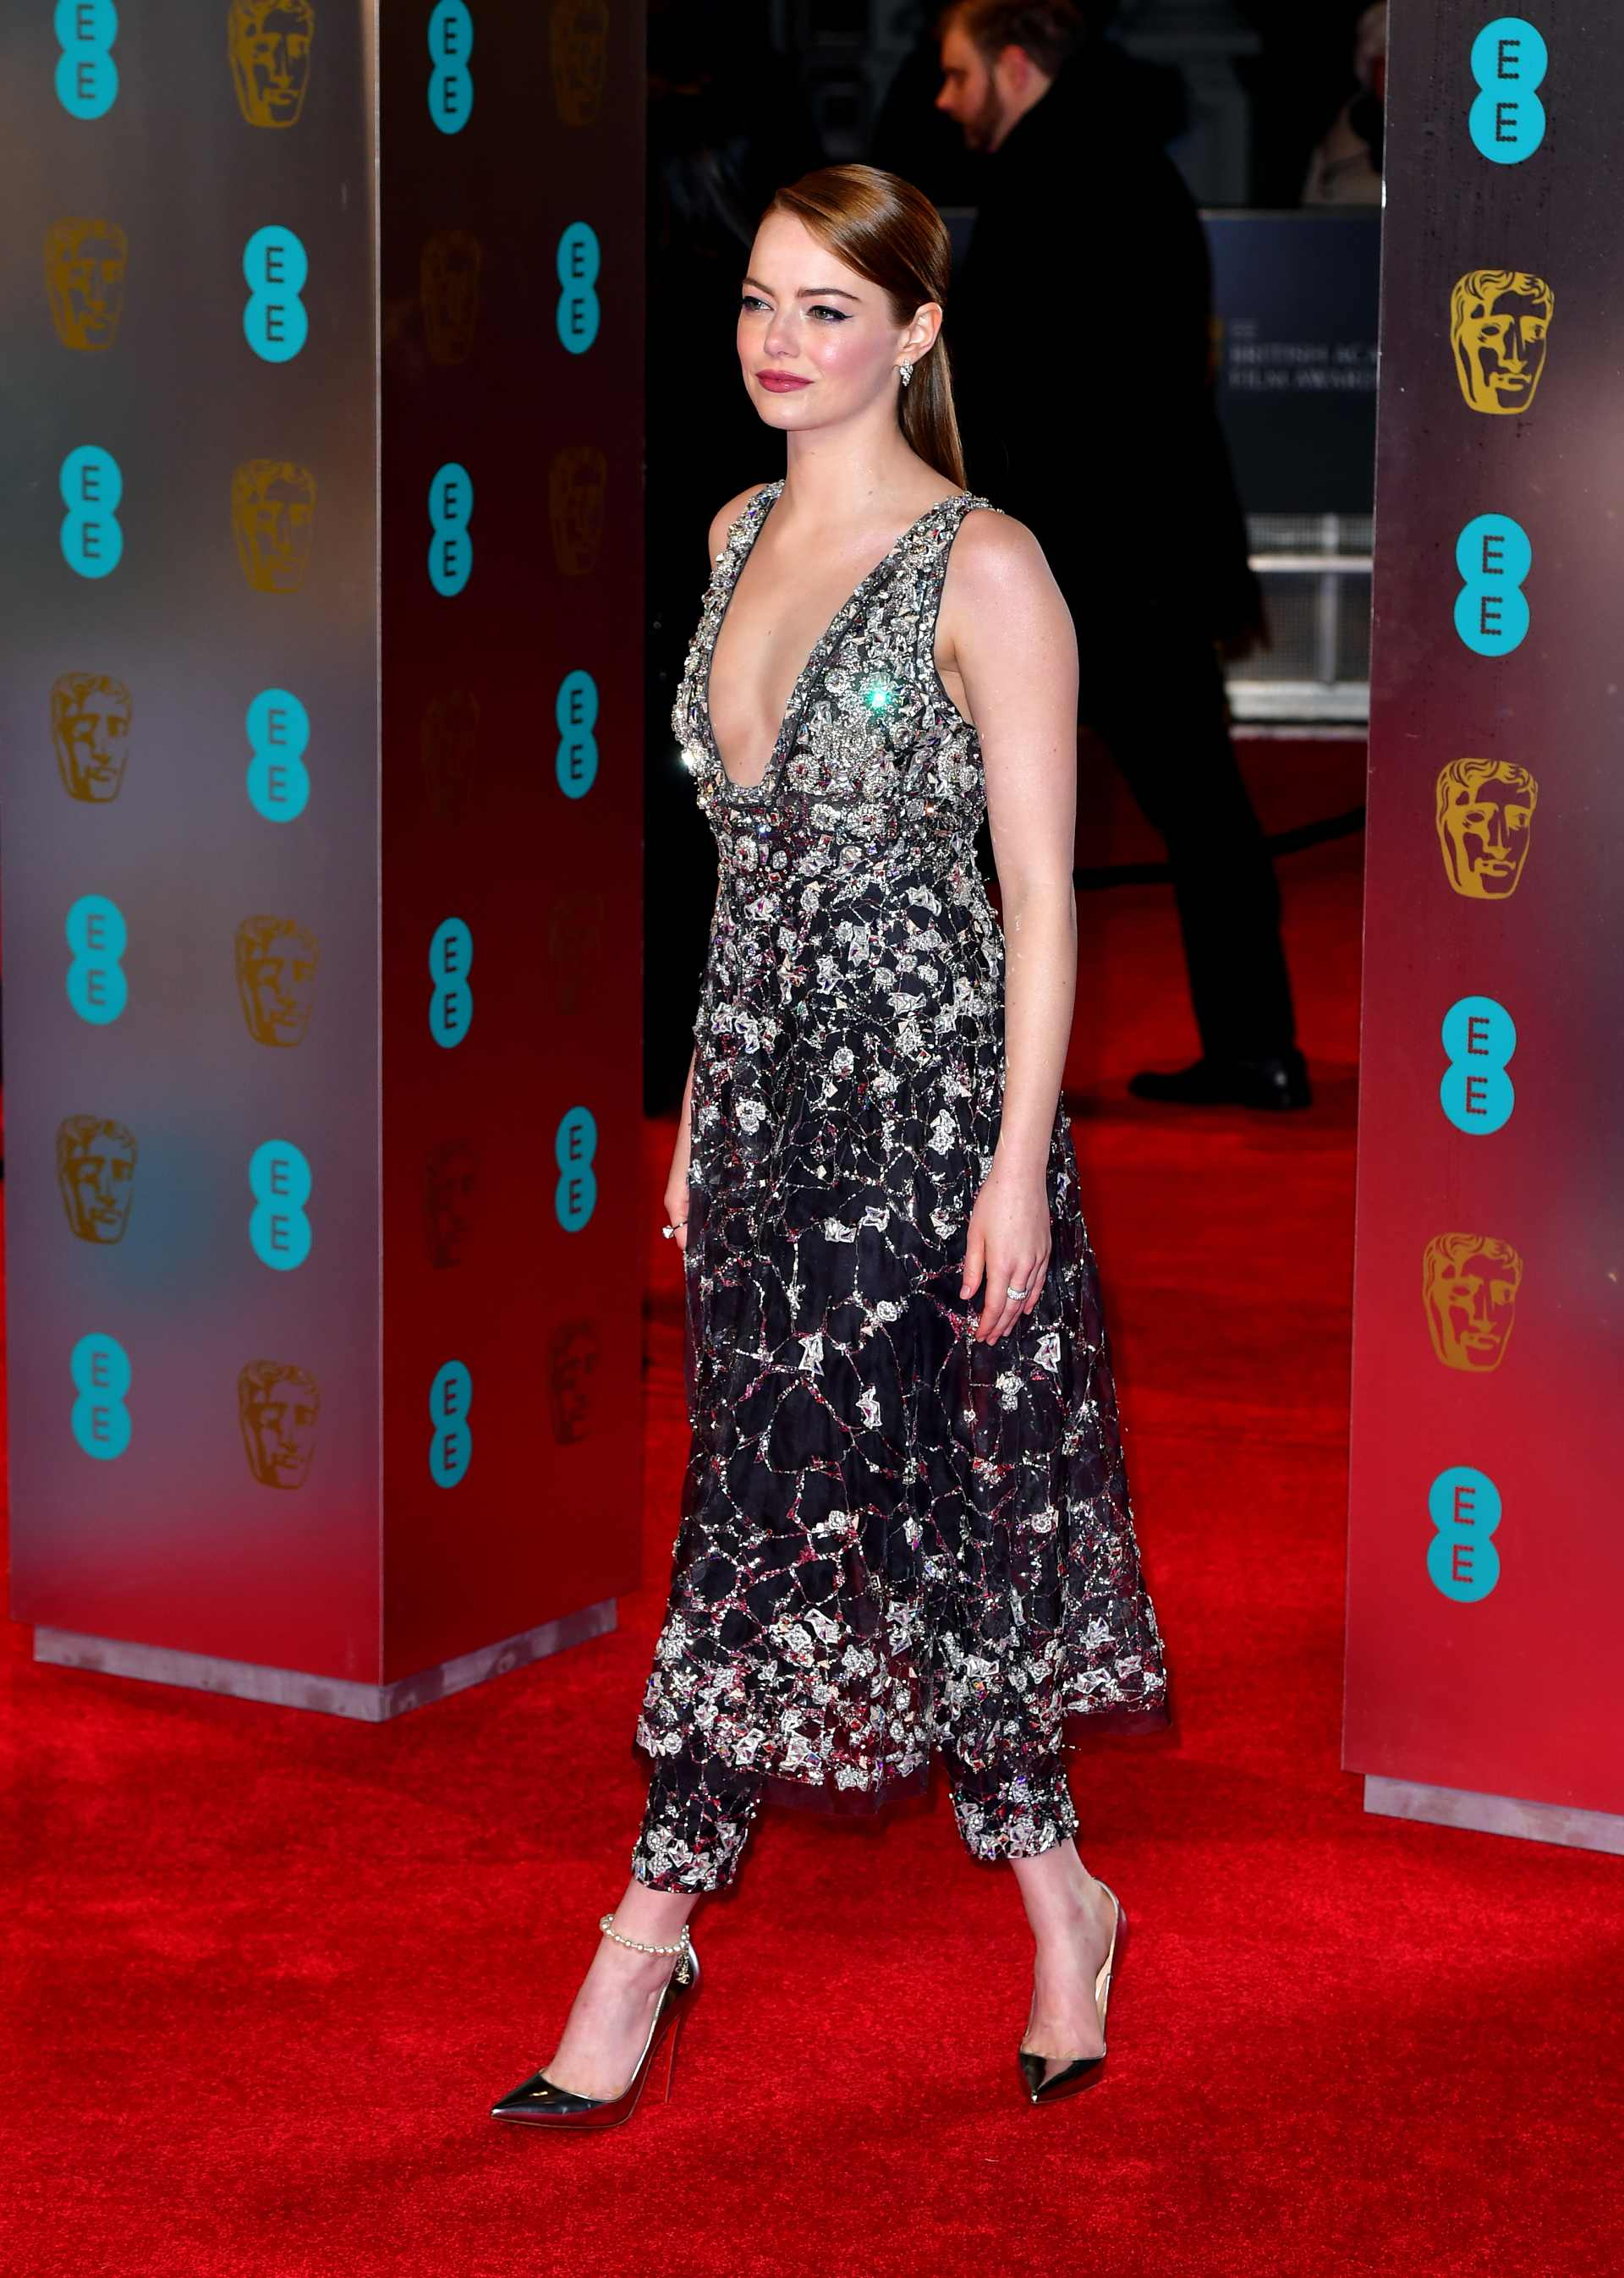 Emma Stone attending the EE British Academy Film Awards held at the Royal Albert Hall, Kensington Gore, Kensington, London.